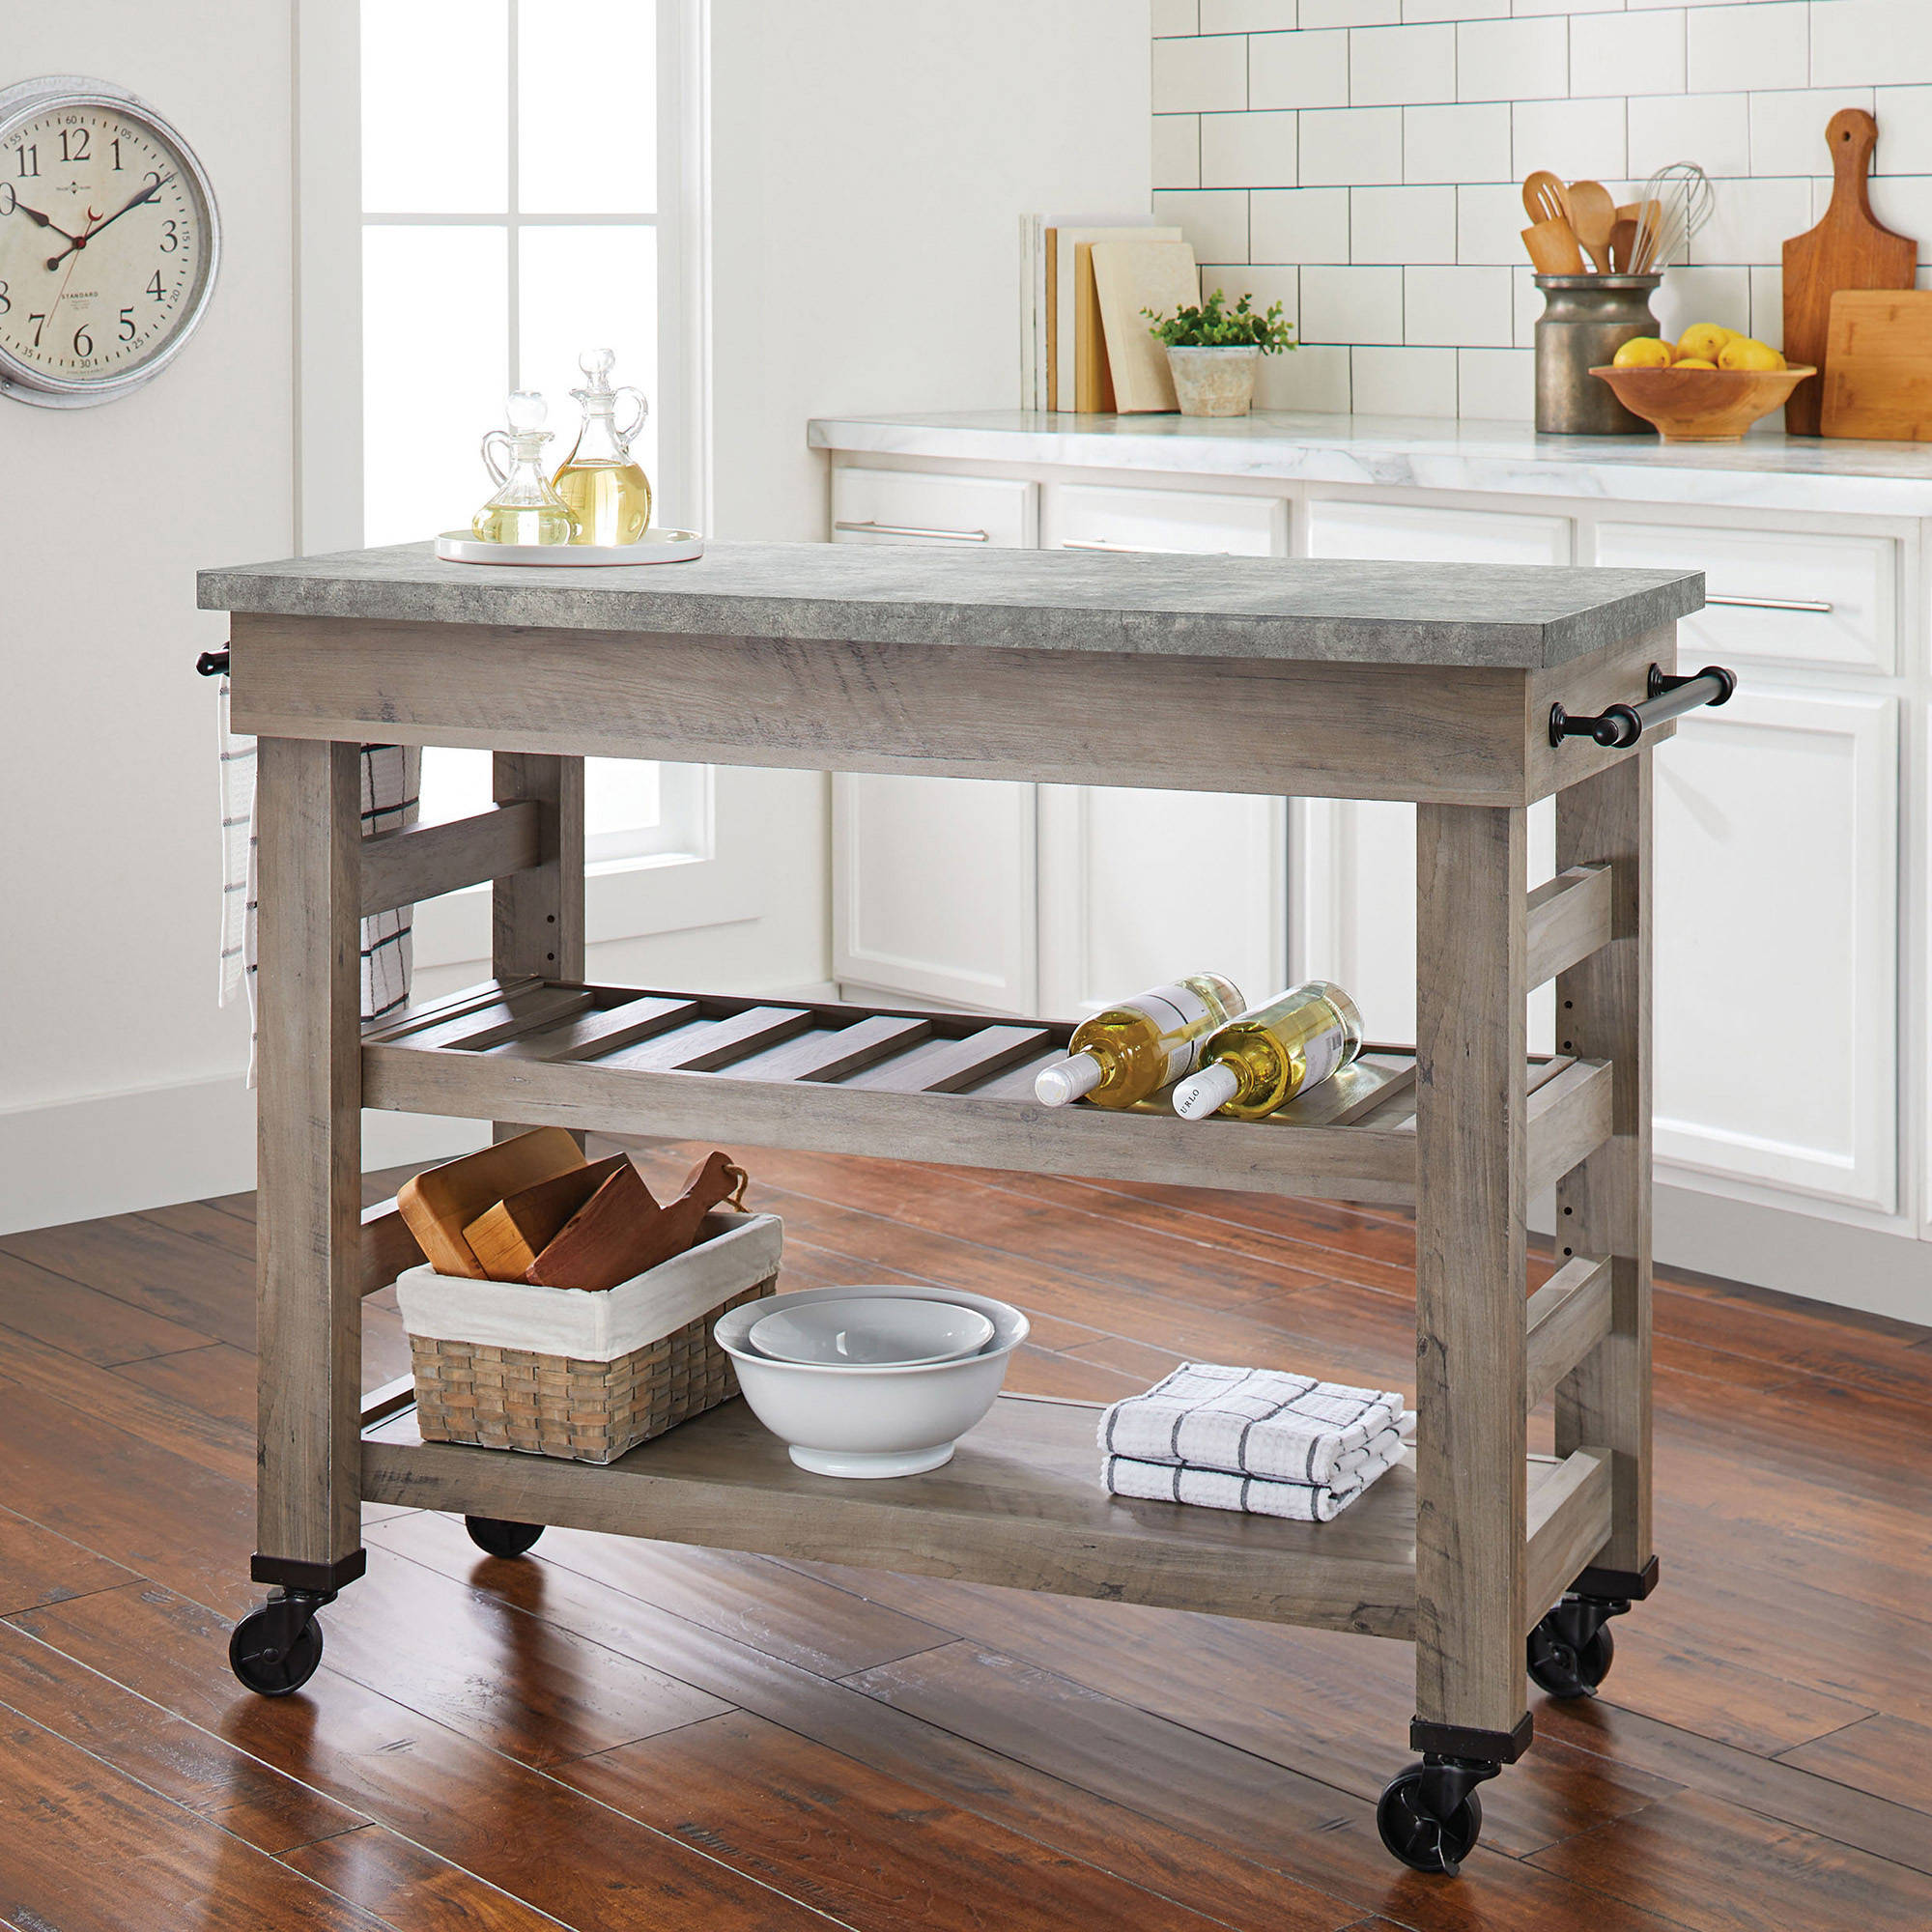 Better Homes And Gardens Farmhouse Collection   Walmart.com